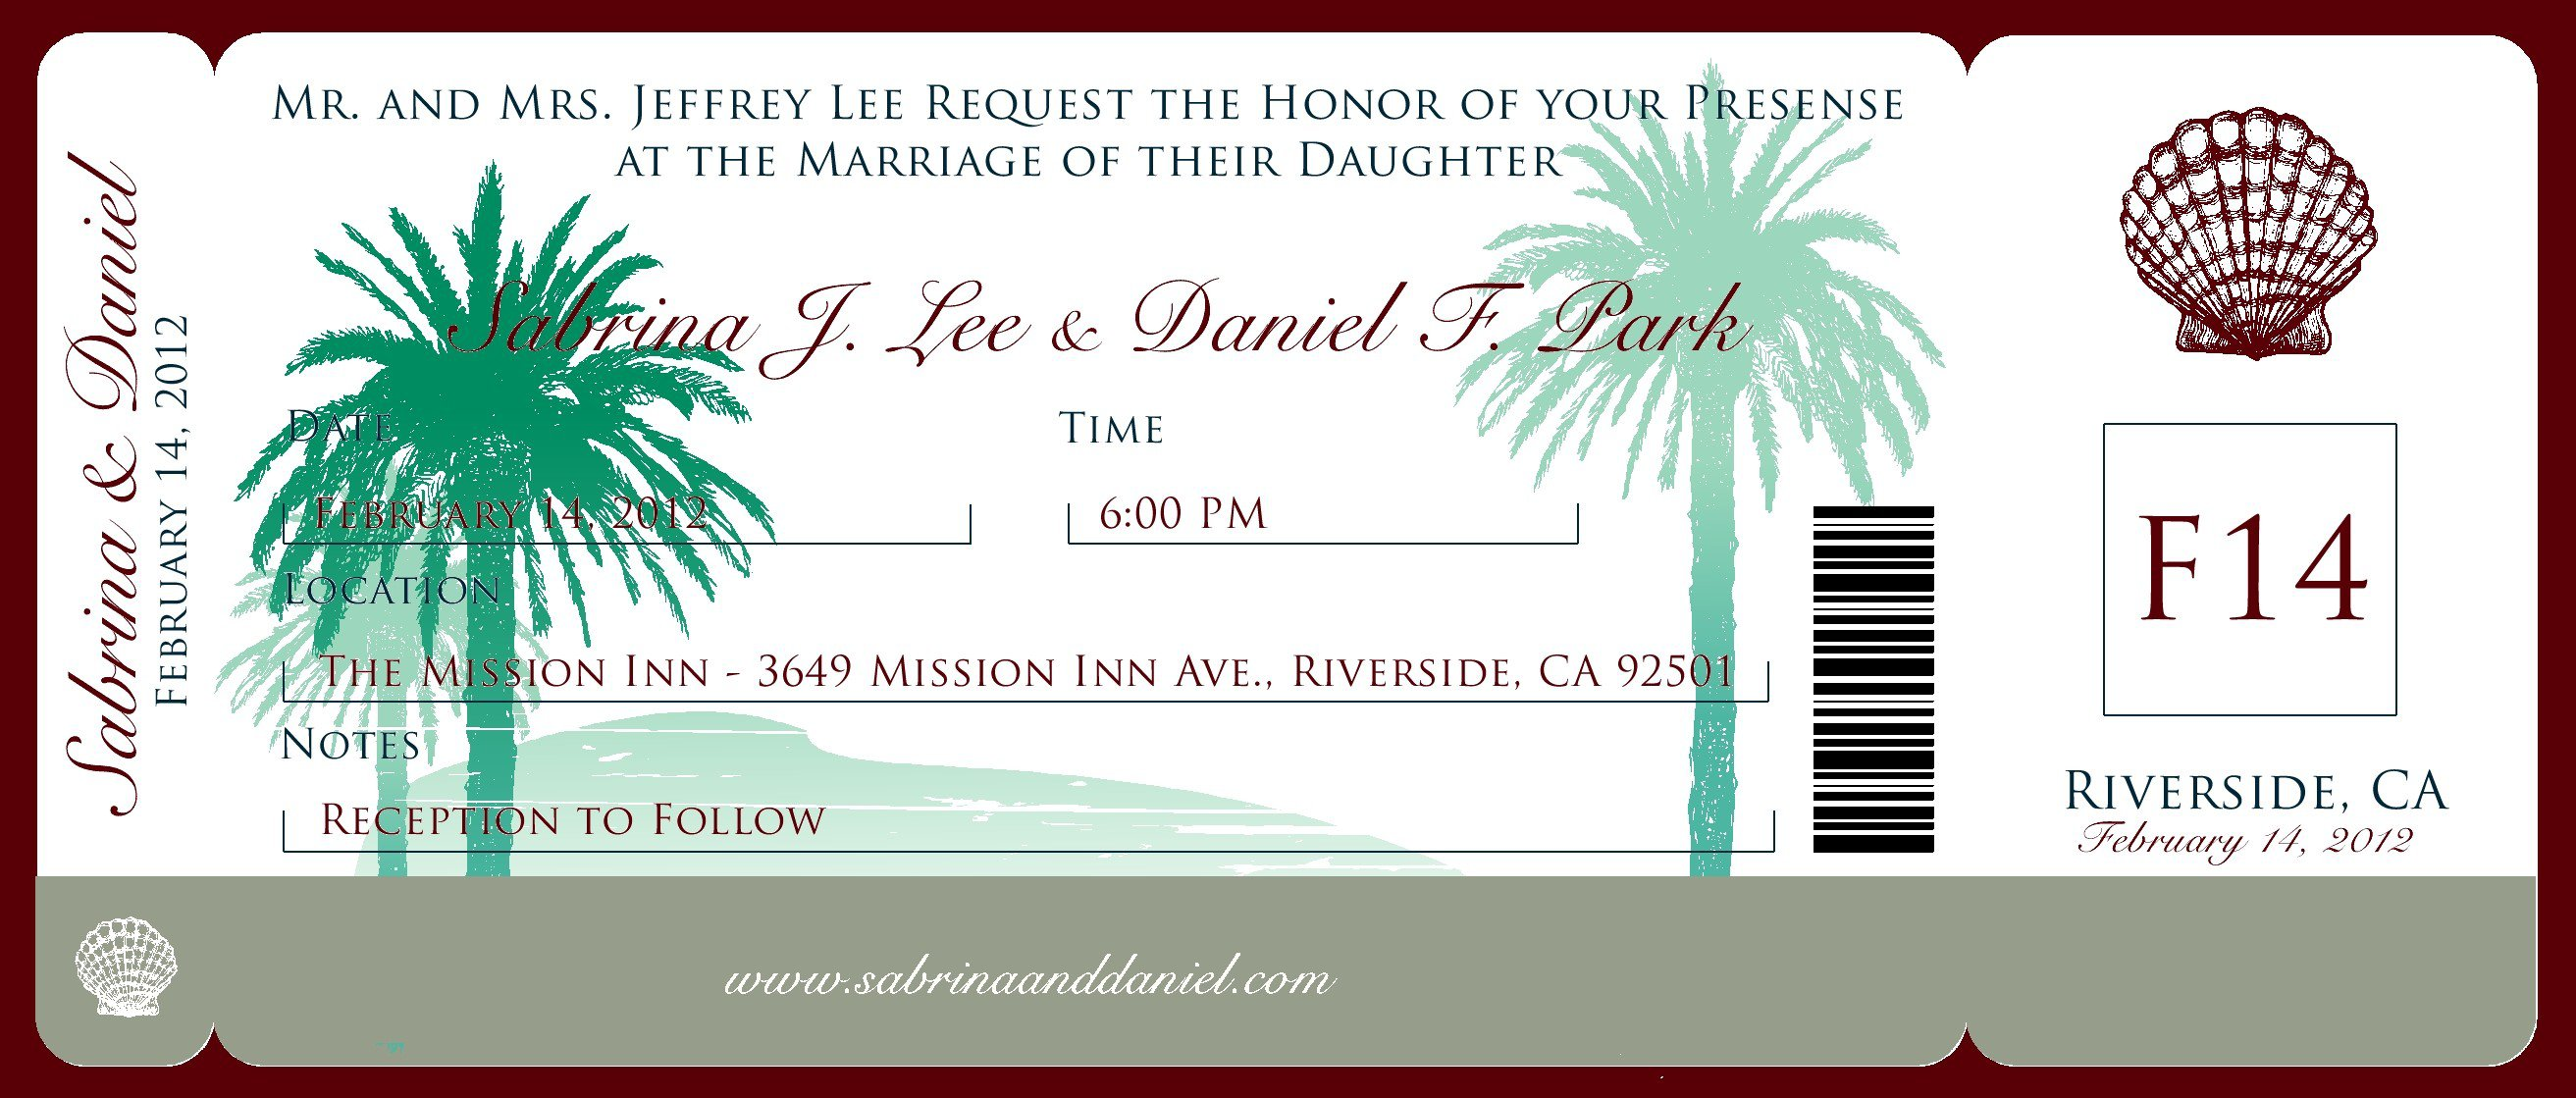 Destination Wedding Invites with nice invitations design